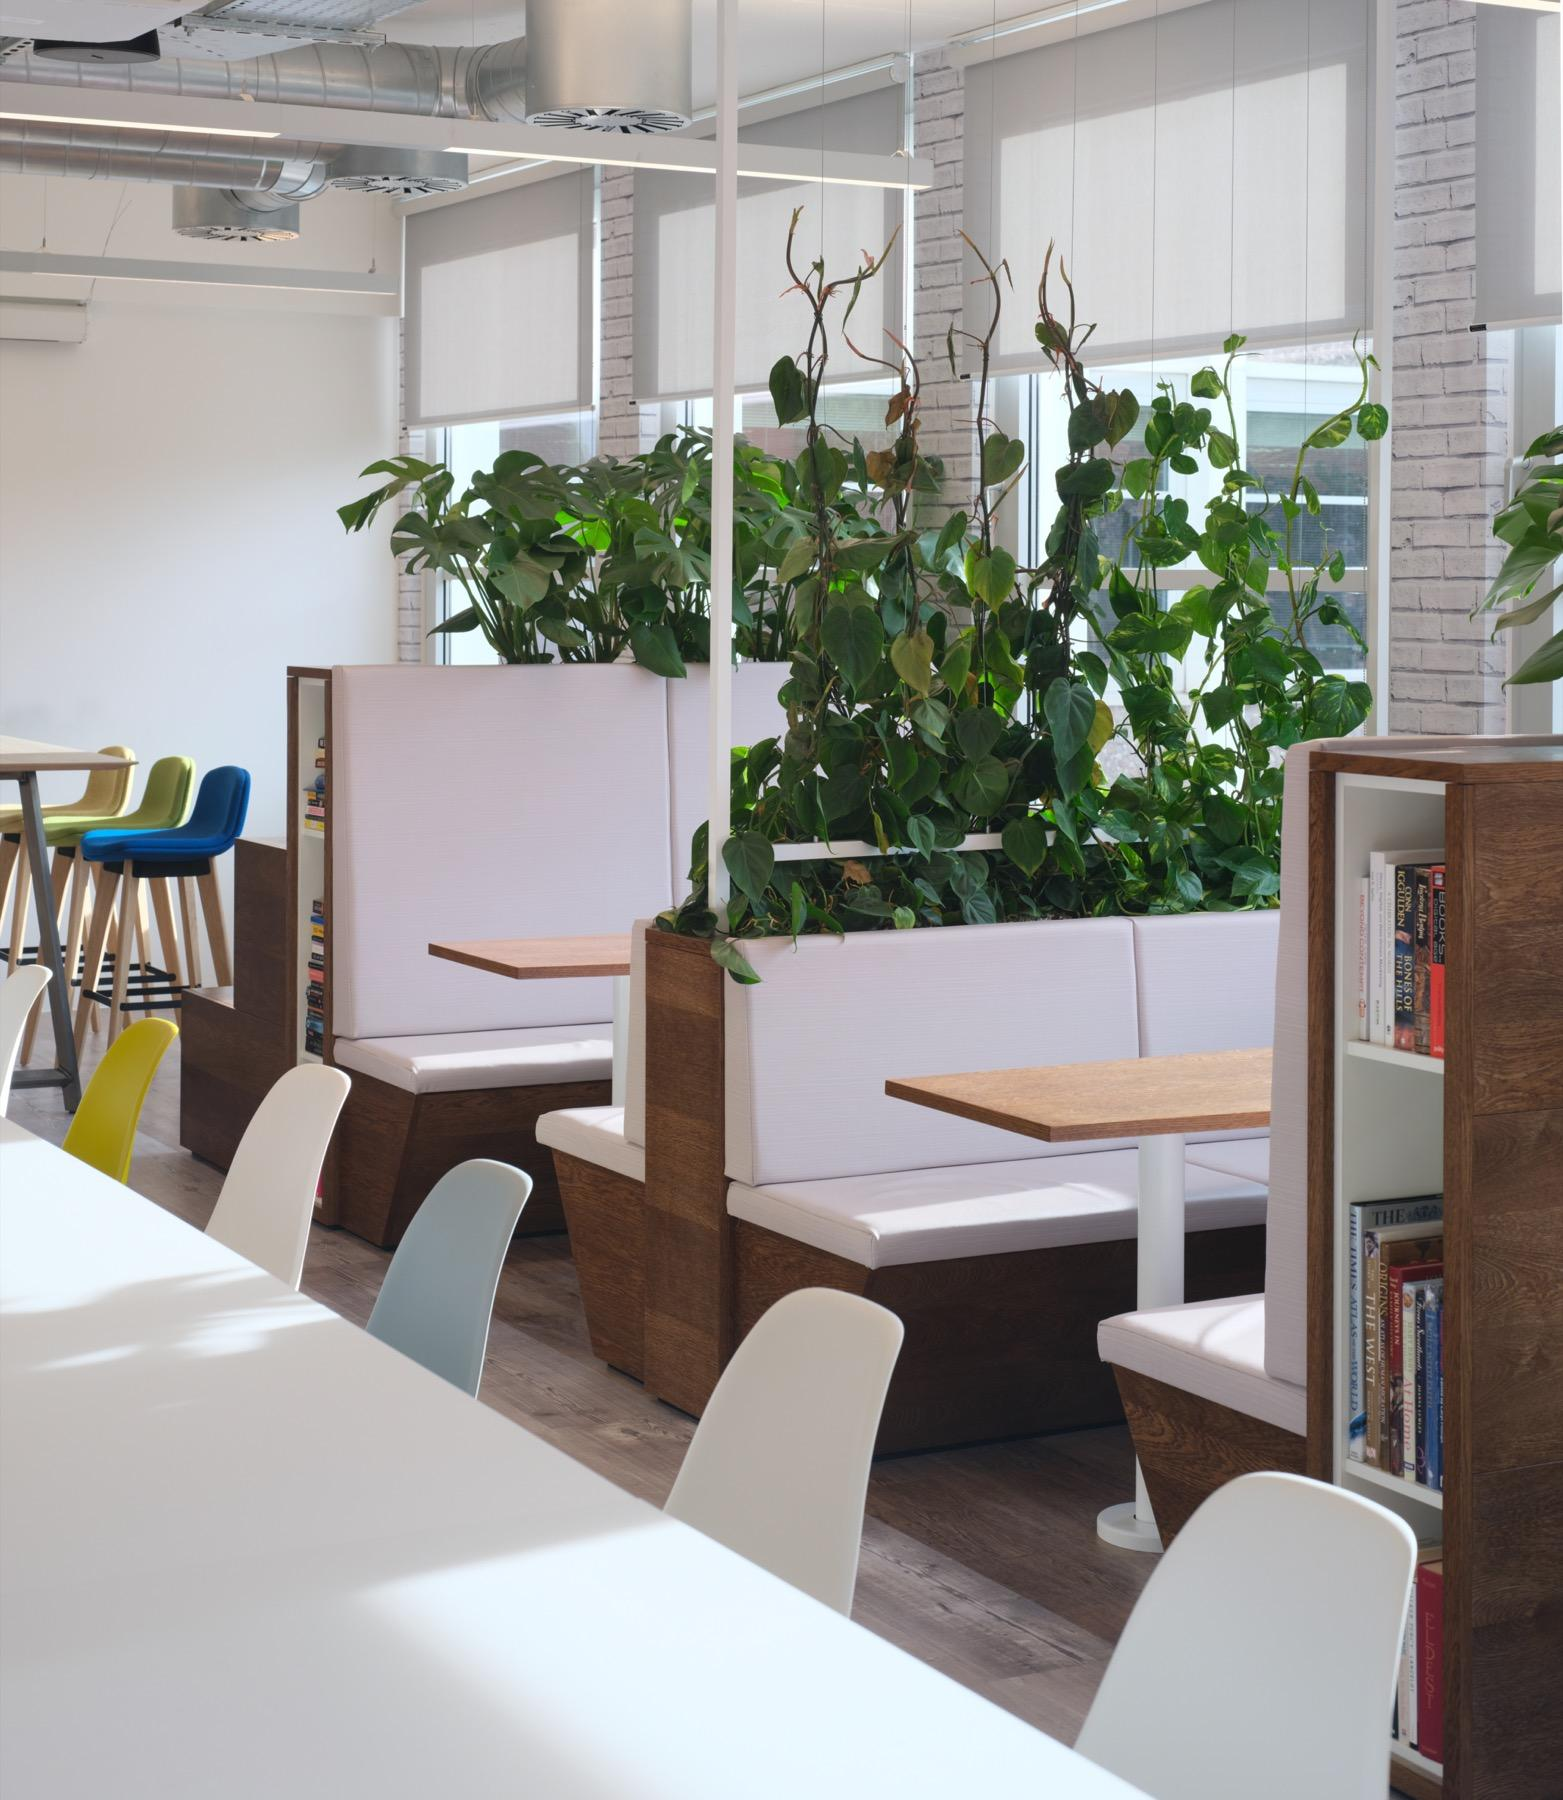 Sage biophilia in the workplace